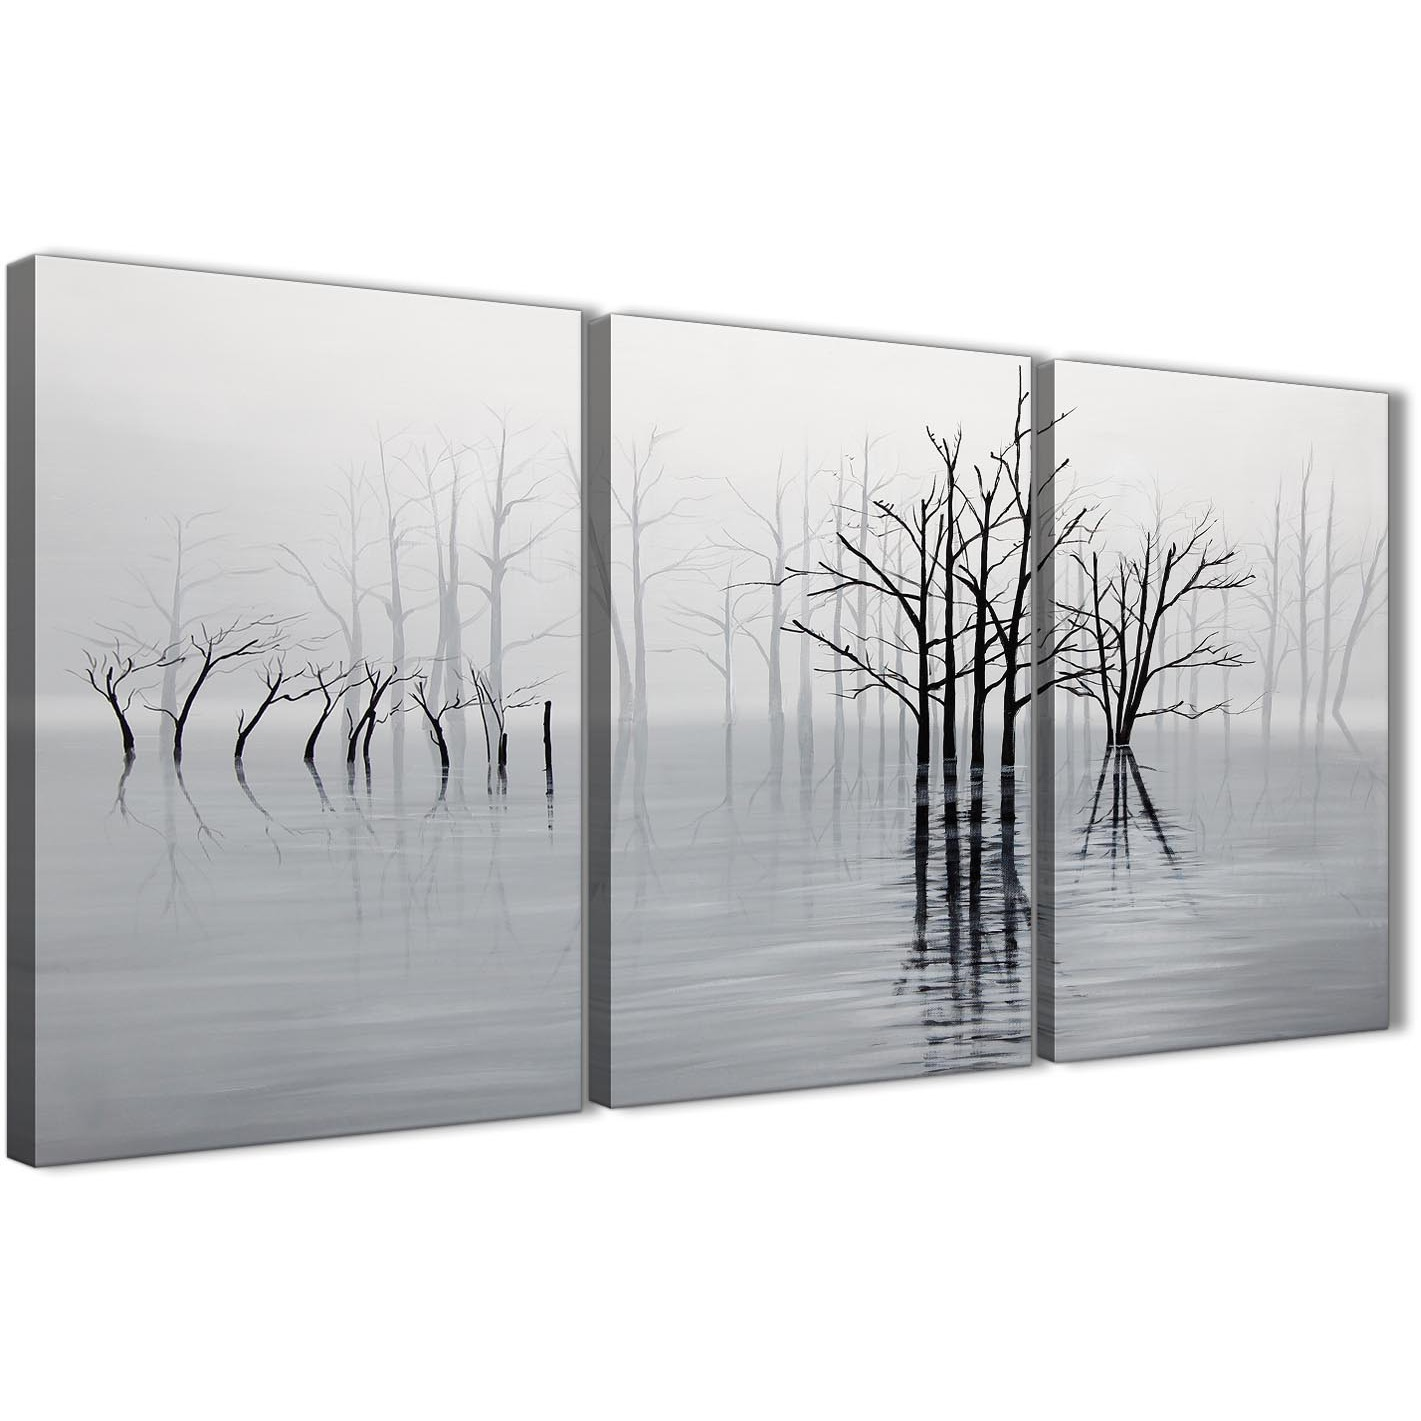 Black And White Paintings For Bedroom Bedroom Sets Black Modern Bedroom Black Bedroom Furniture Sets Pictures: 3 Part Black White Grey Tree Landscape Painting Living